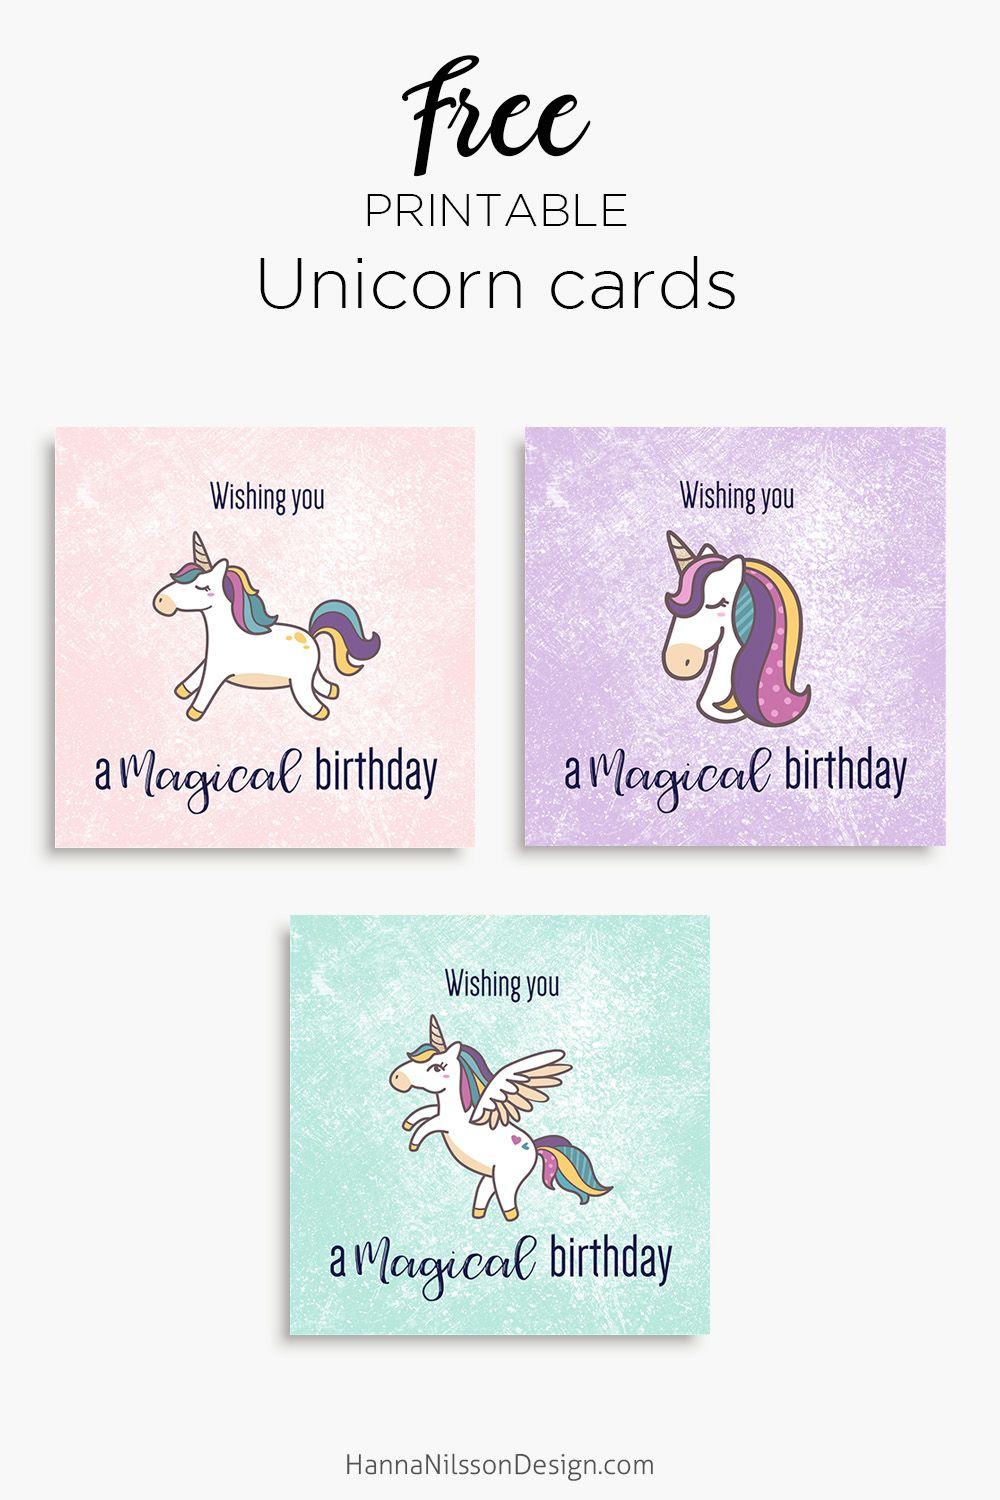 Magical Unicorn Birthday Printable Cards   Tis' Better To Give - Free Printable Greeting Card Sentiments